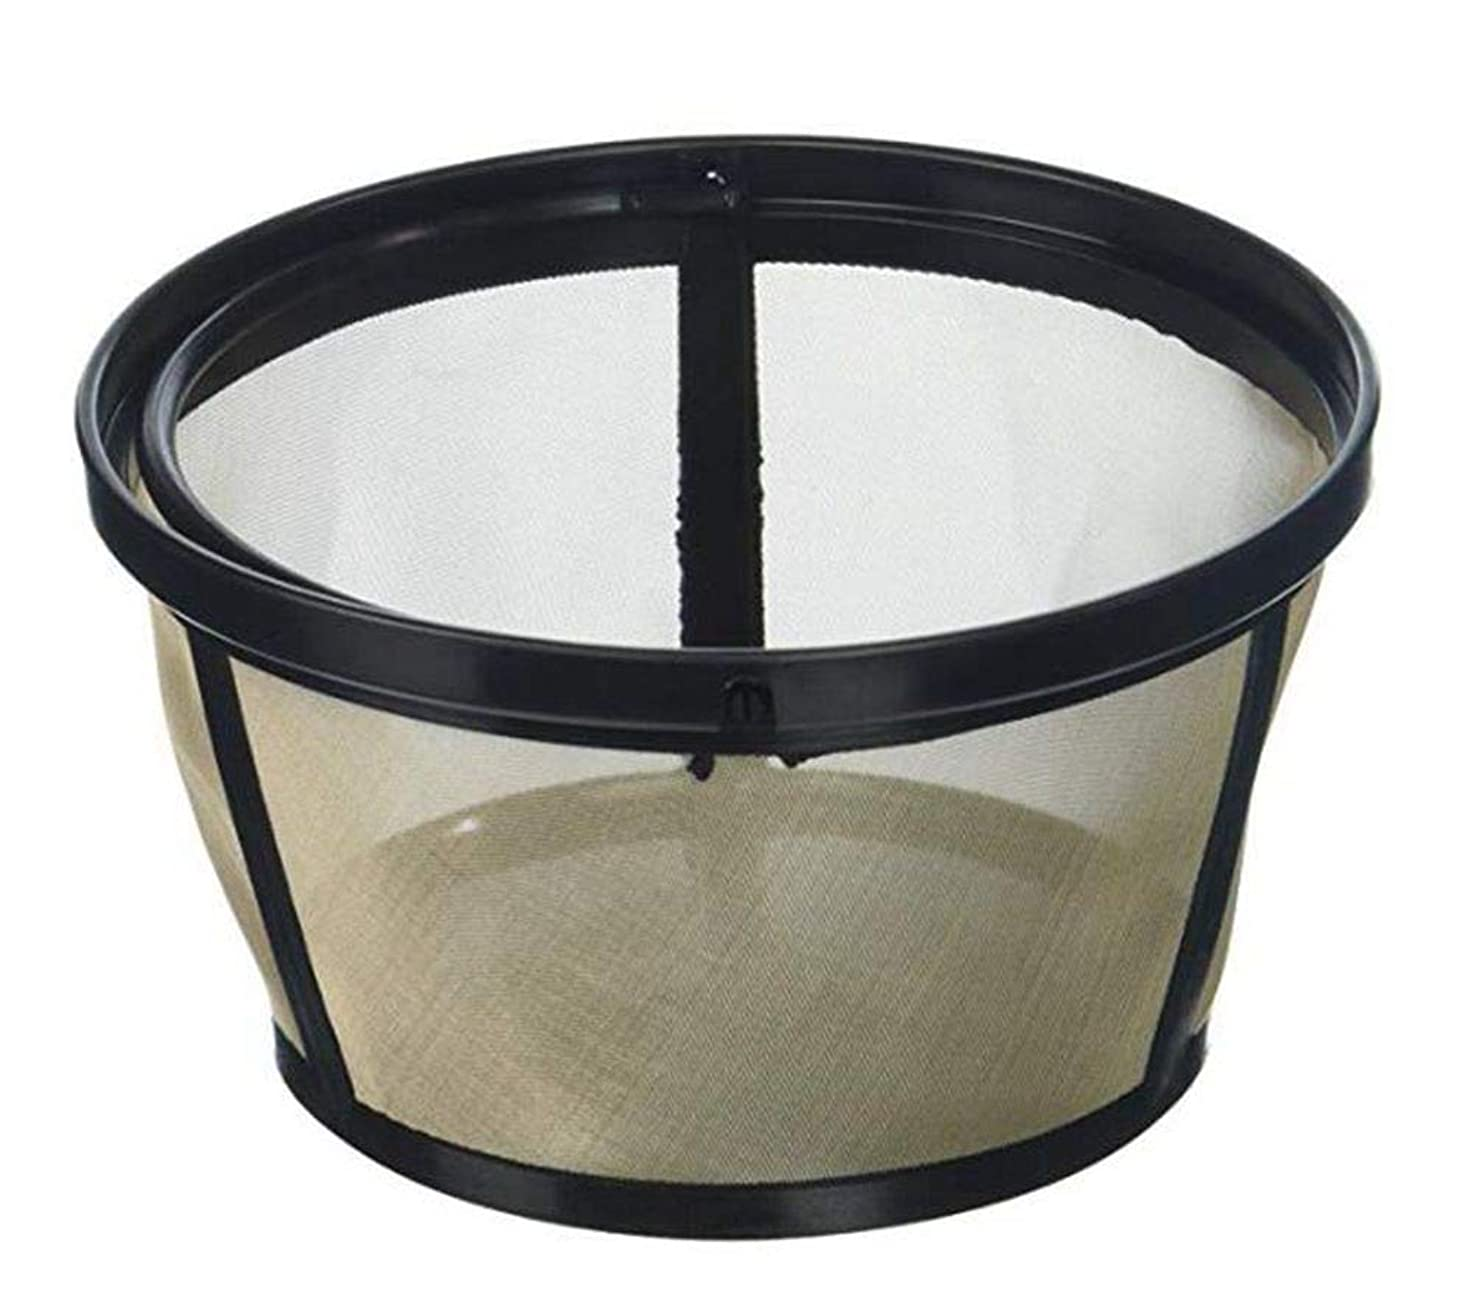 EDOBLUE Permanent Basket-Style Gold Tone Coffee Filter designed for Mr. Coffee 10-12 Cup Basket-Style Coffeemakers